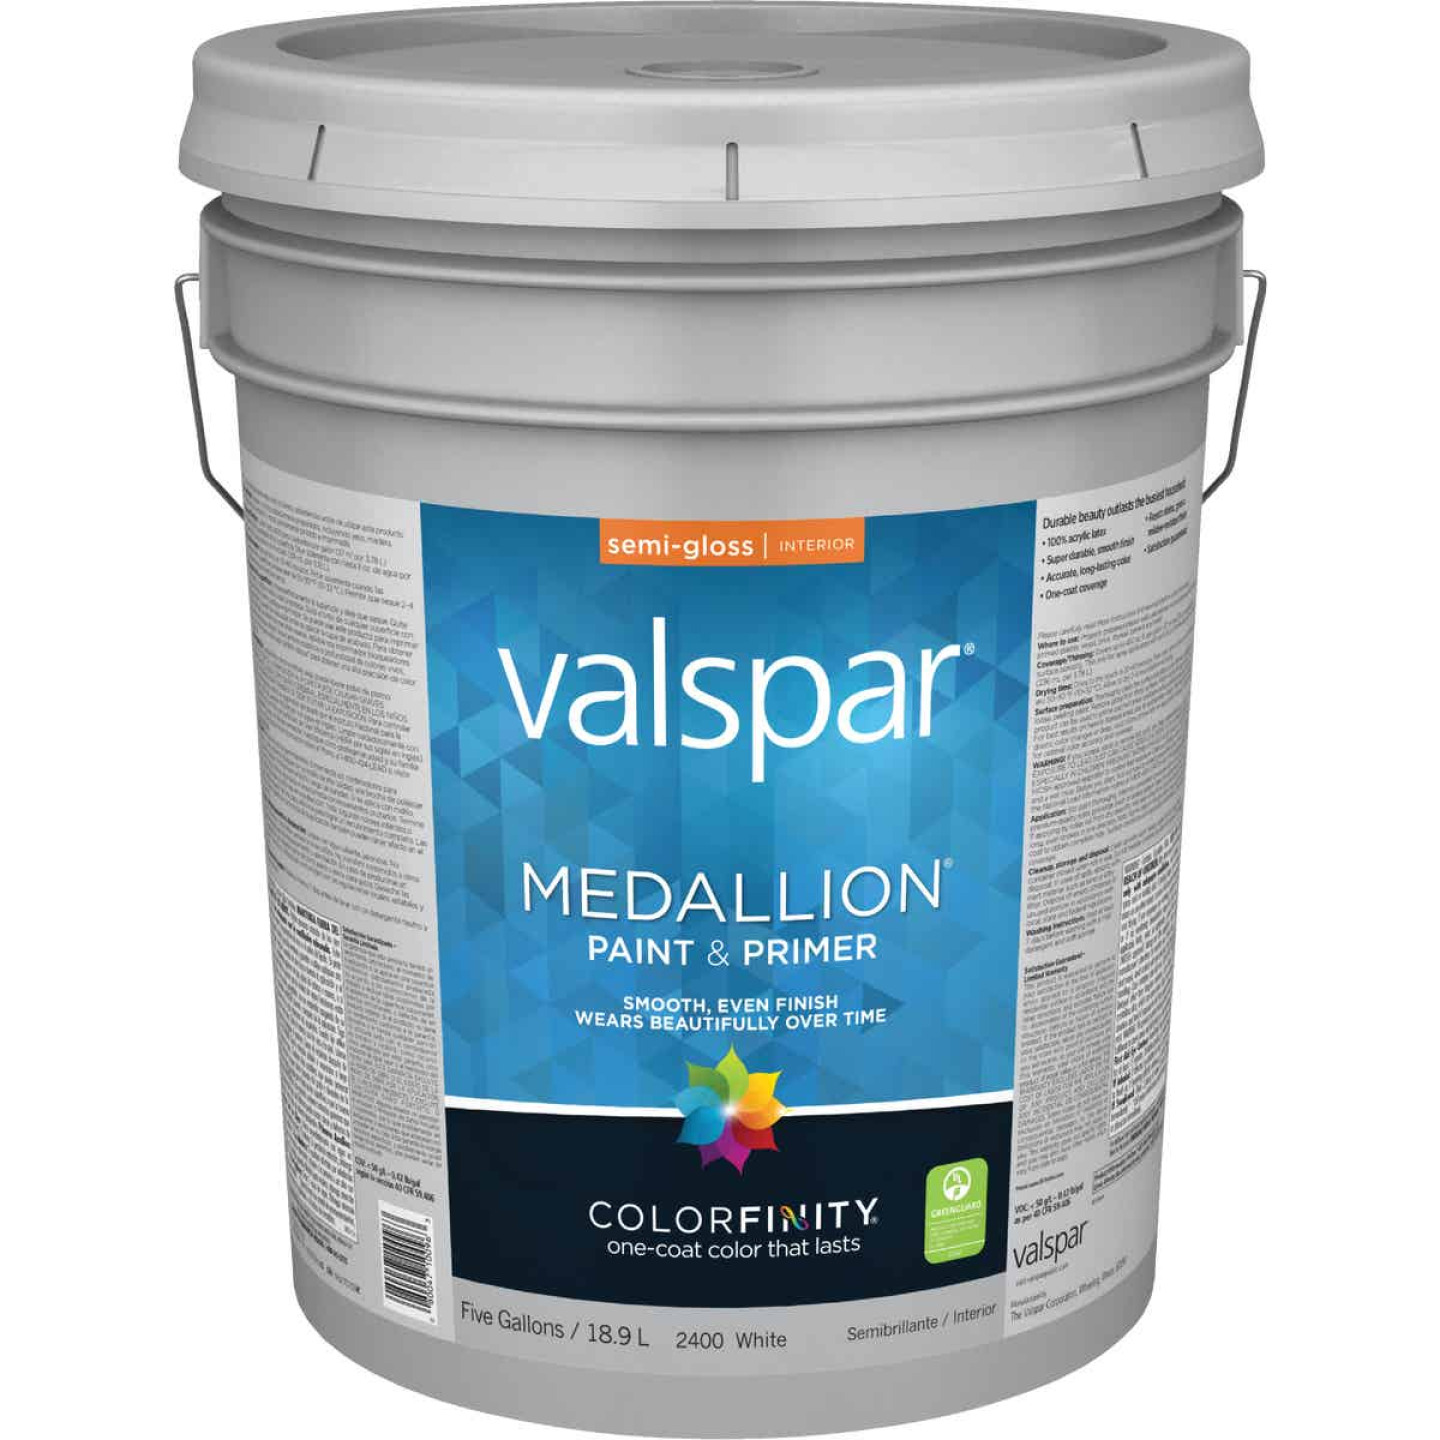 Valspar Medallion 100% Acrylic Paint & Primer Semi-Gloss Interior Wall Paint, White, 5 Gal. Image 1